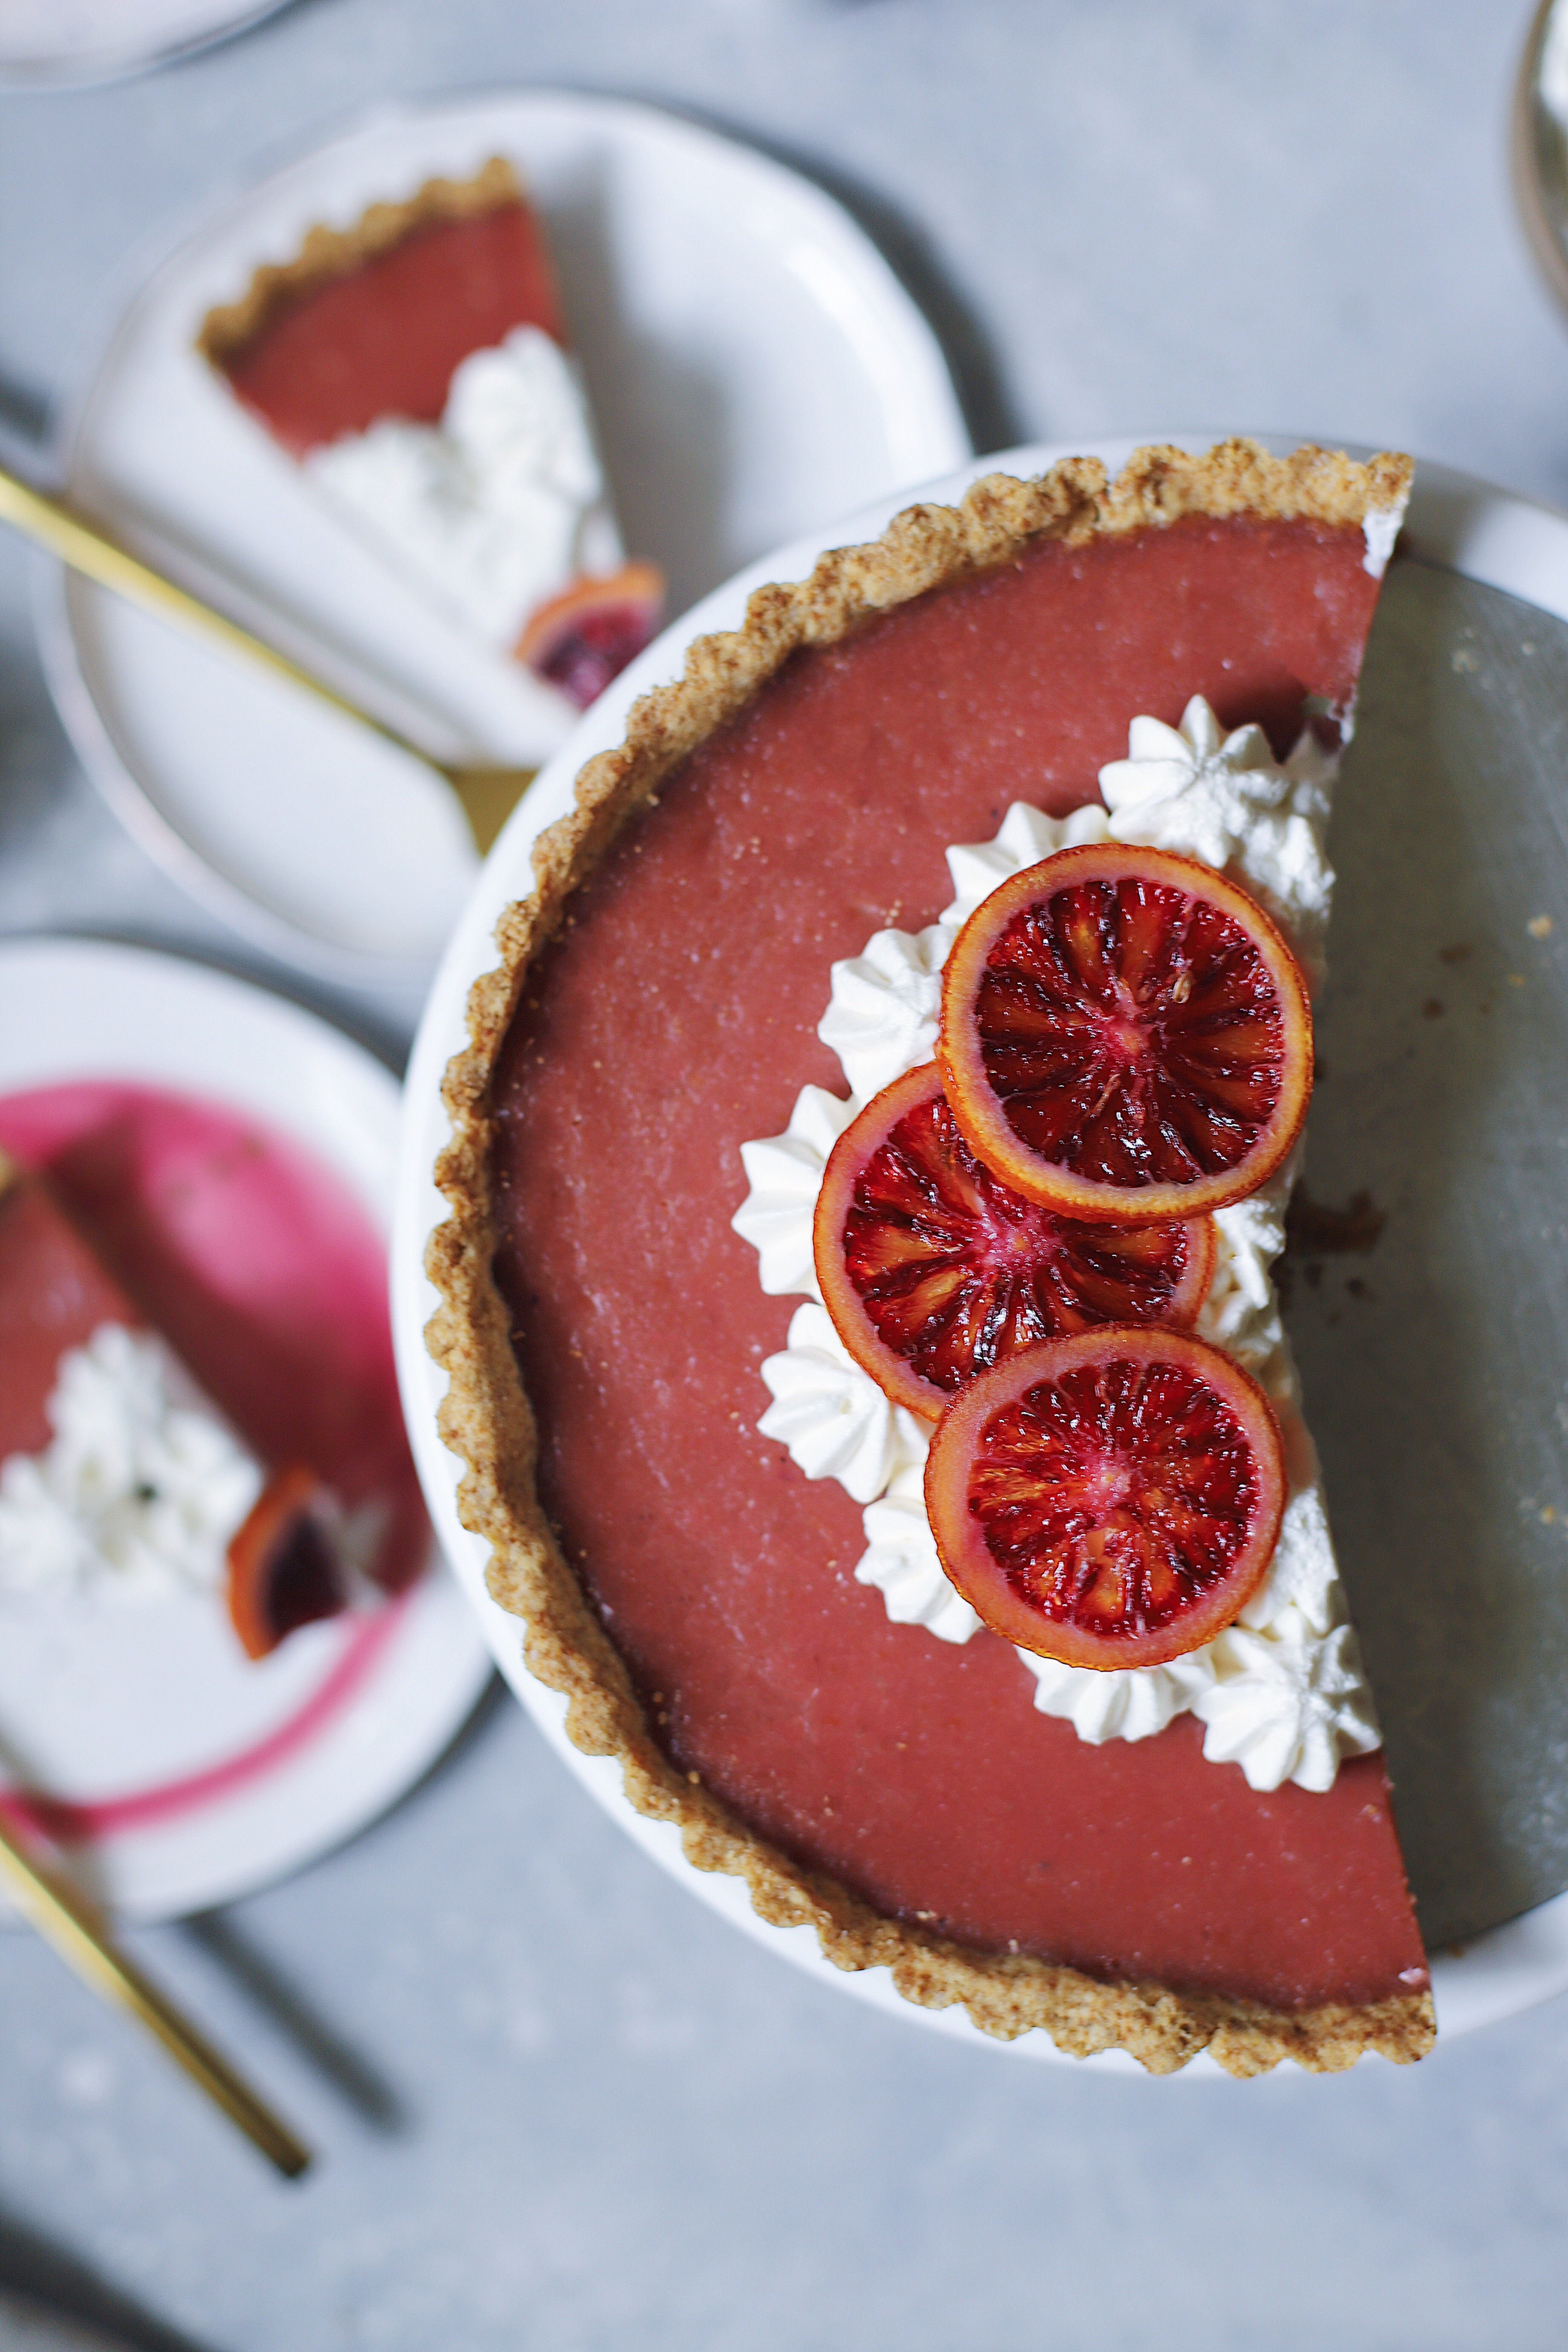 Blood Orange and Hibiscus Curd Tart with a Gingersnap Crust and Candied Blood Orange slices